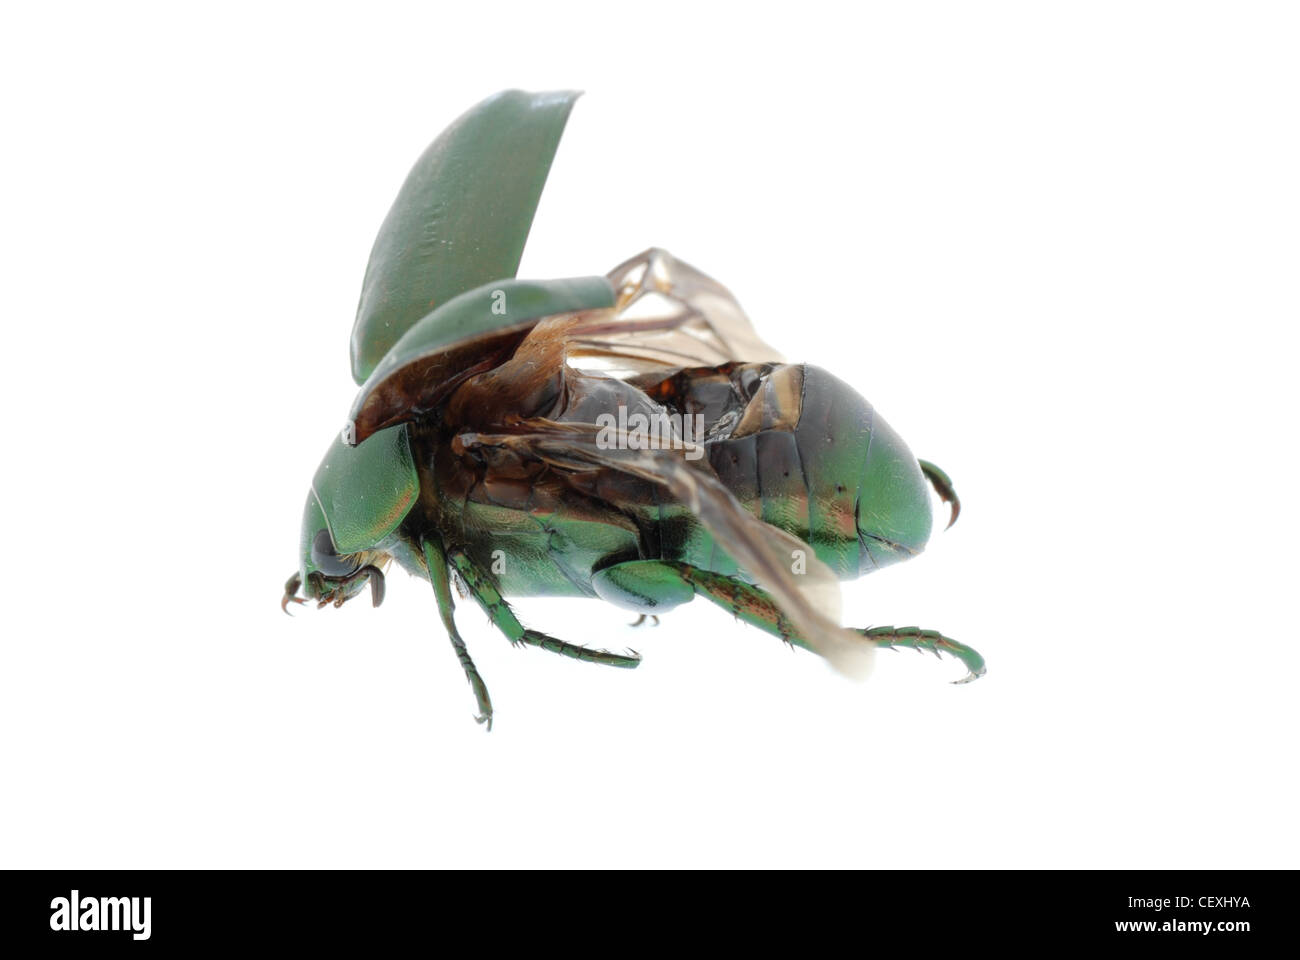 flying insect green beetle (Anomala cupripes) isolated on